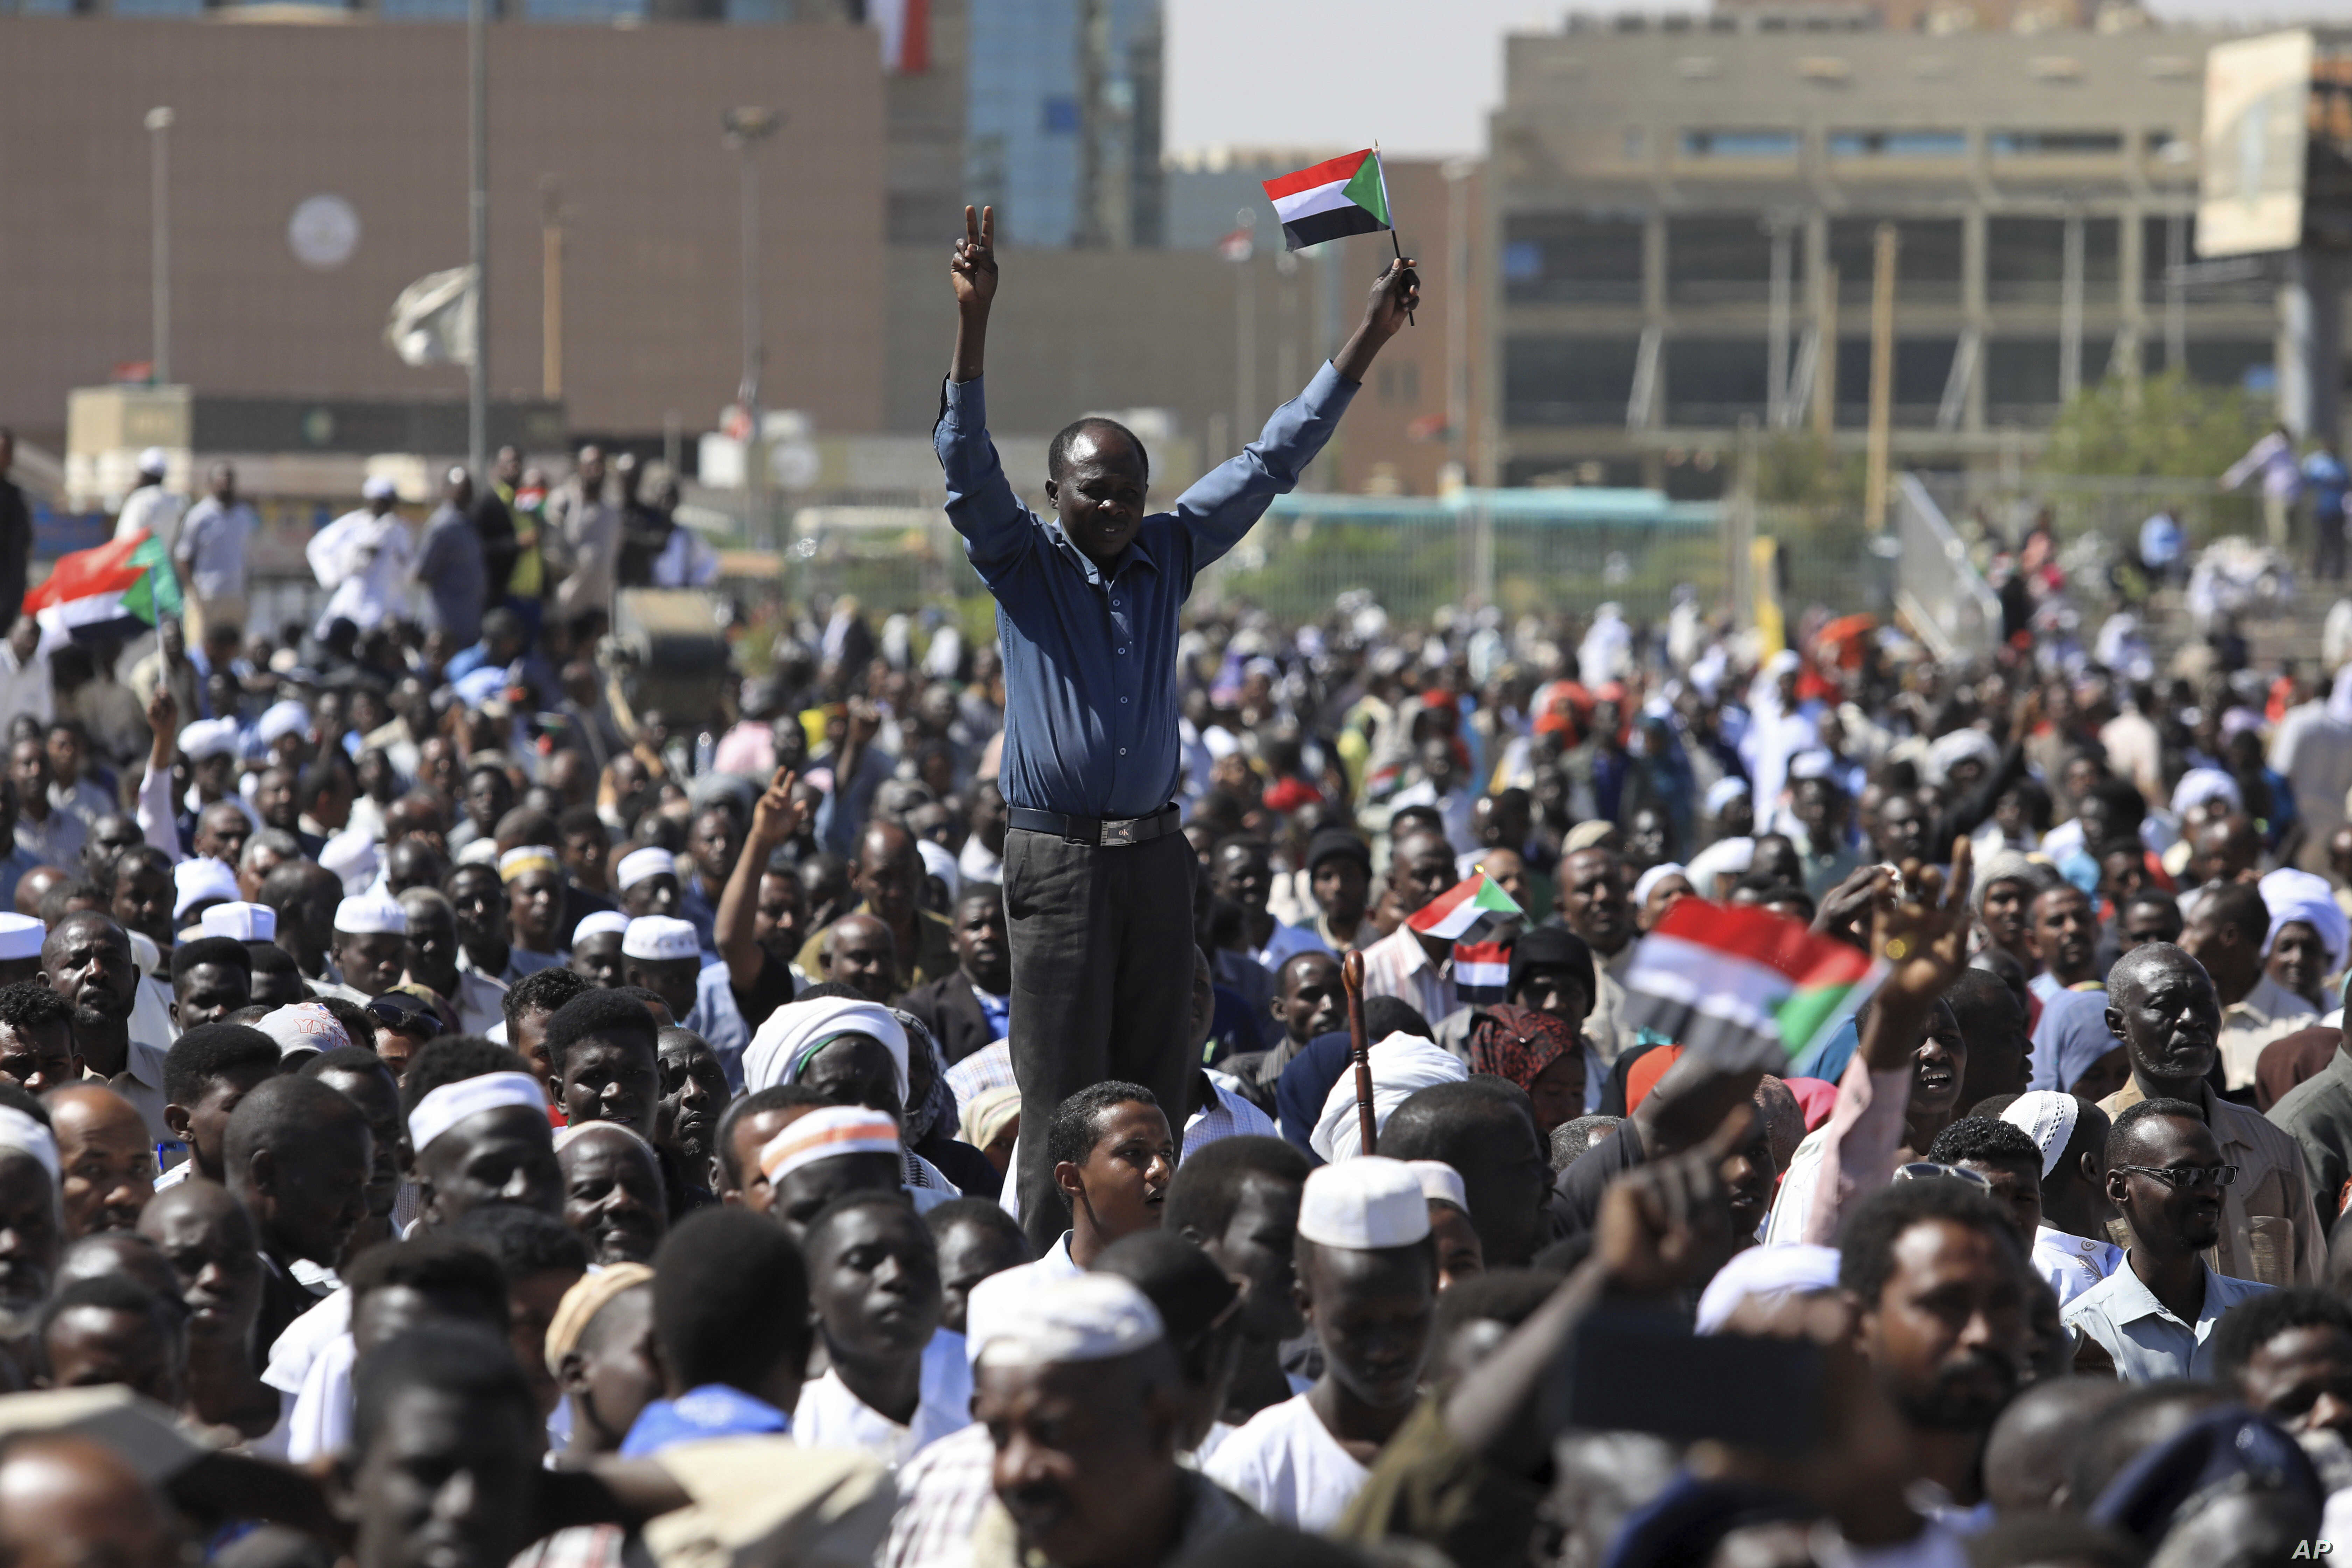 Supporters of Sudan's President Omar al-Bashir attend a pro-government rally in Khartoum, Sudan, Wednesday, Jan. 9, 2019.